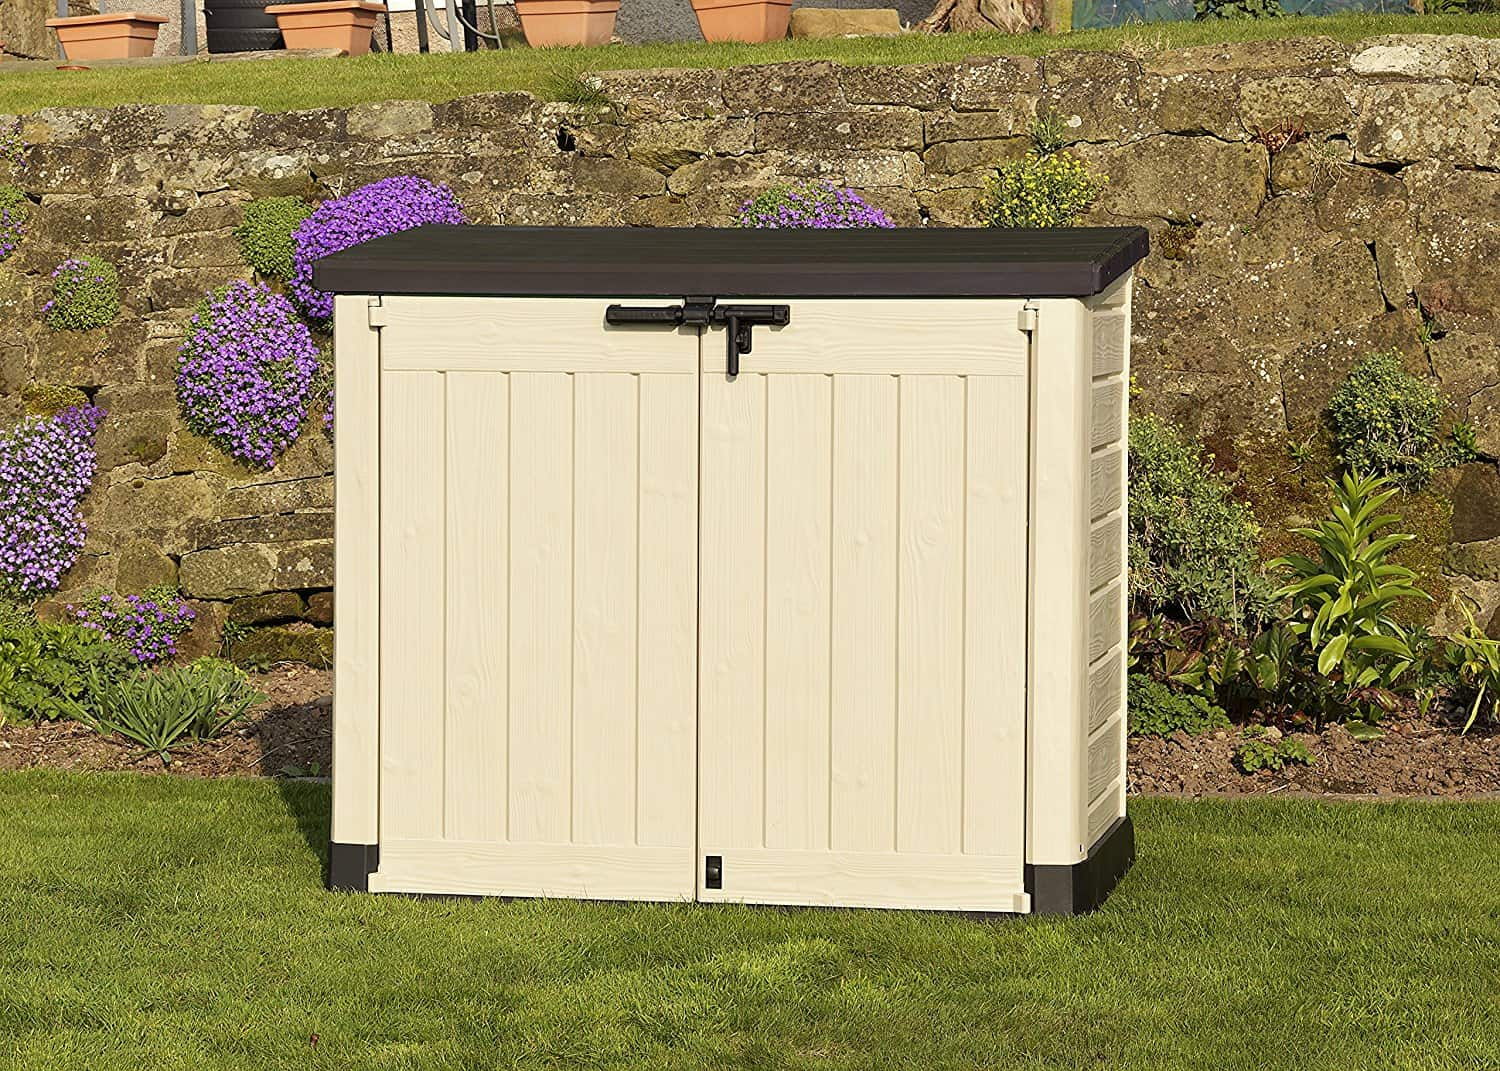 Keter Store It Out Max Plastic Storage Shed - Closed